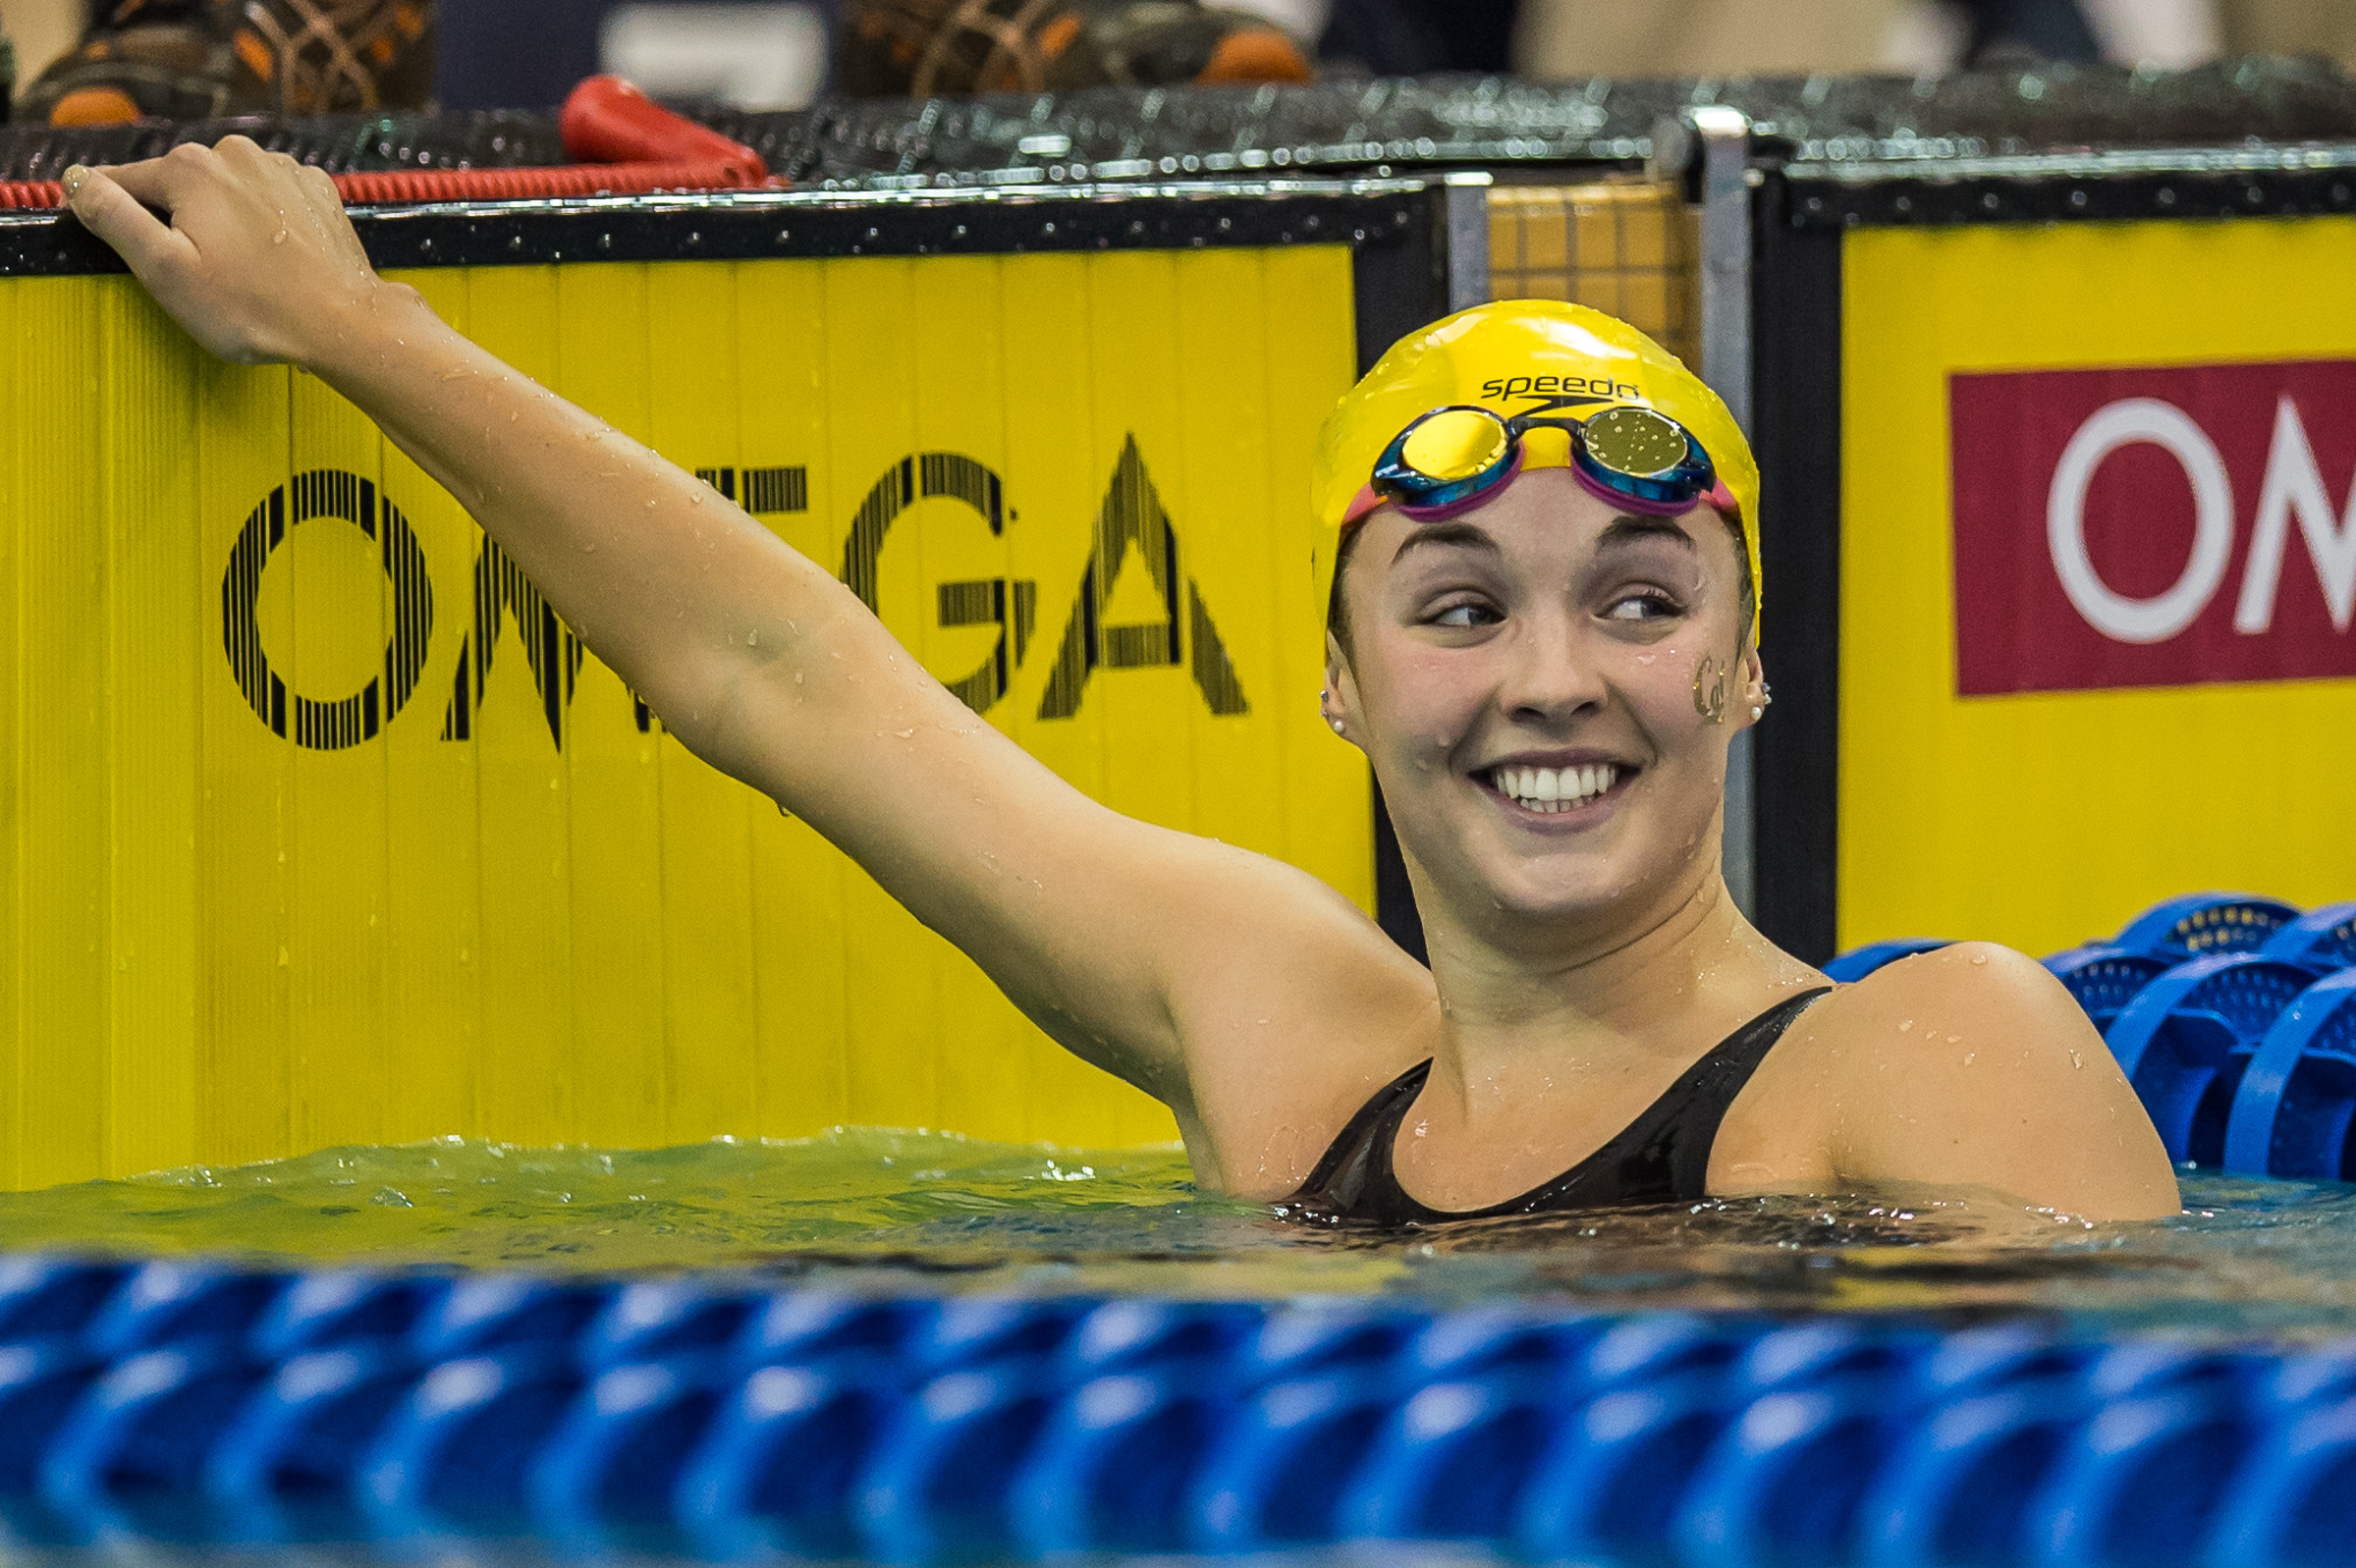 49 S The Norm Gone Is The Mystique Of Natalie Coughlin S